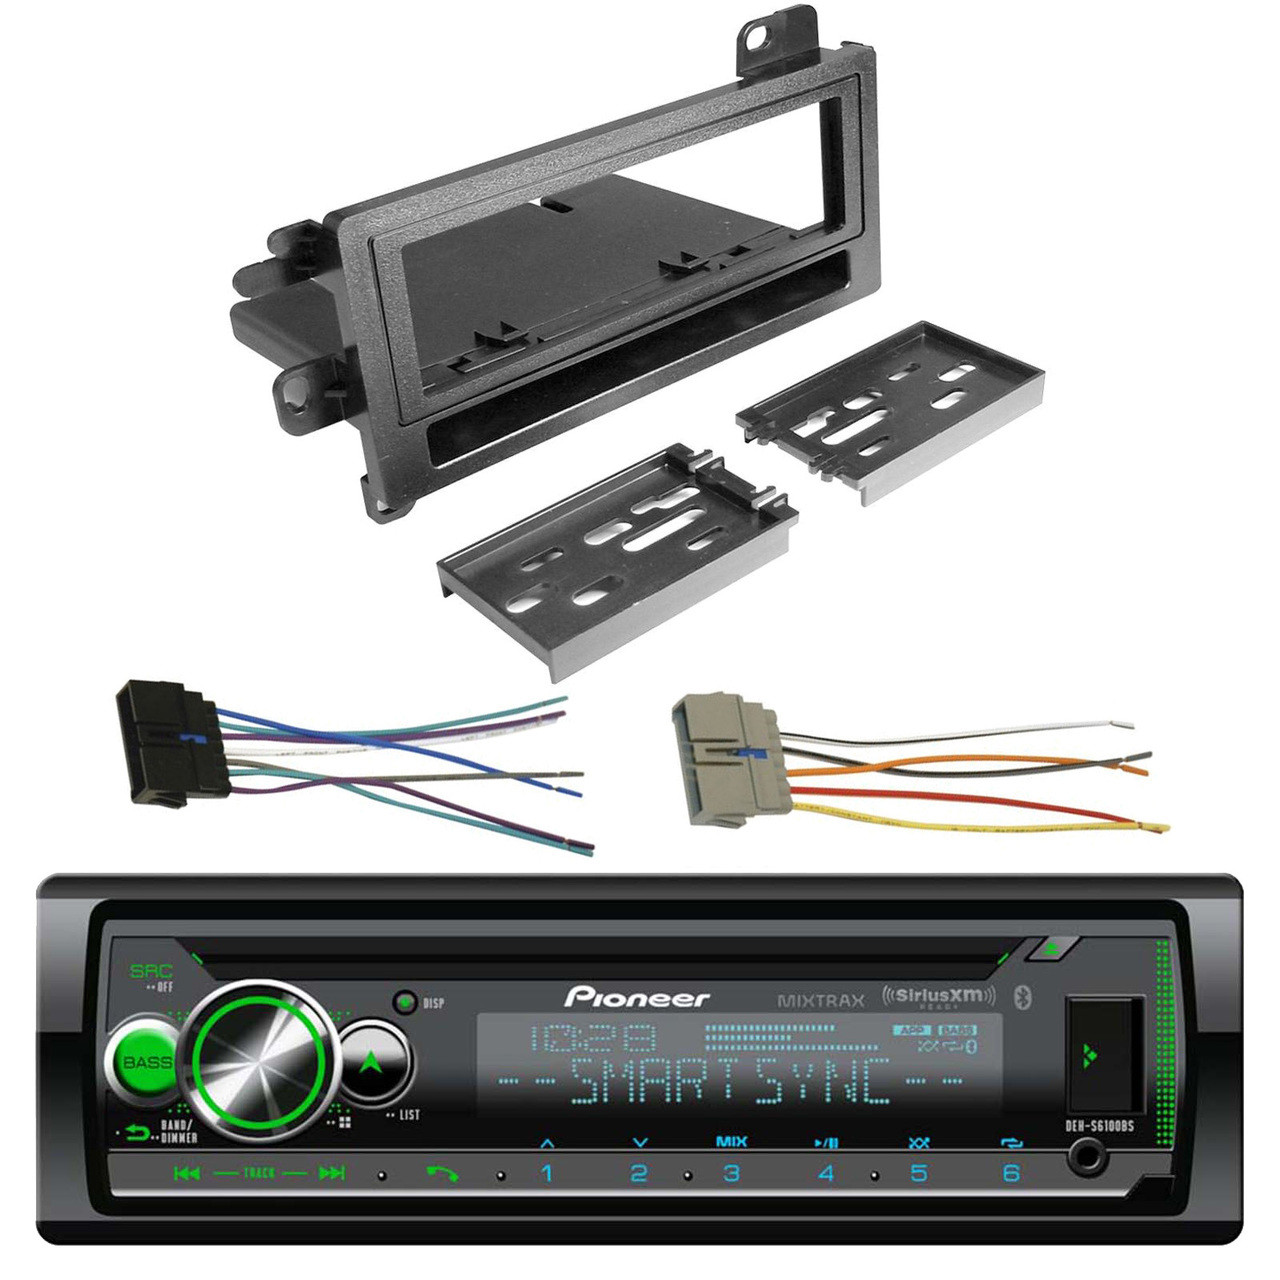 new pioneer din cd siriusxm bluetooth car stereo scosche wire harness dash kit road entertainment [ 1280 x 1280 Pixel ]